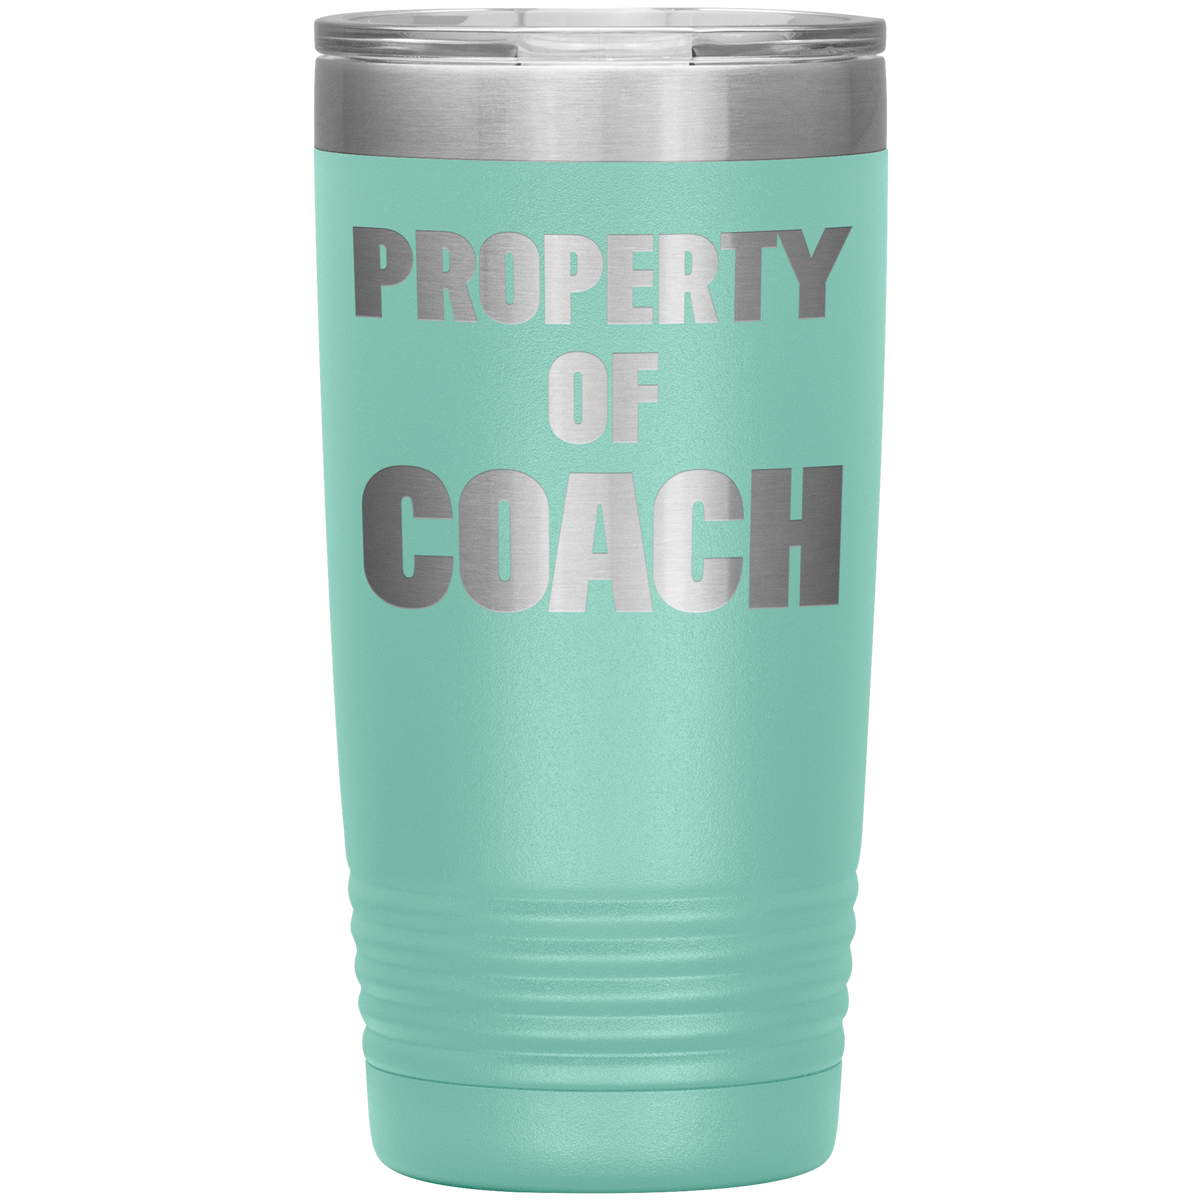 Coach Gift Idea Property of Coach Tumbler